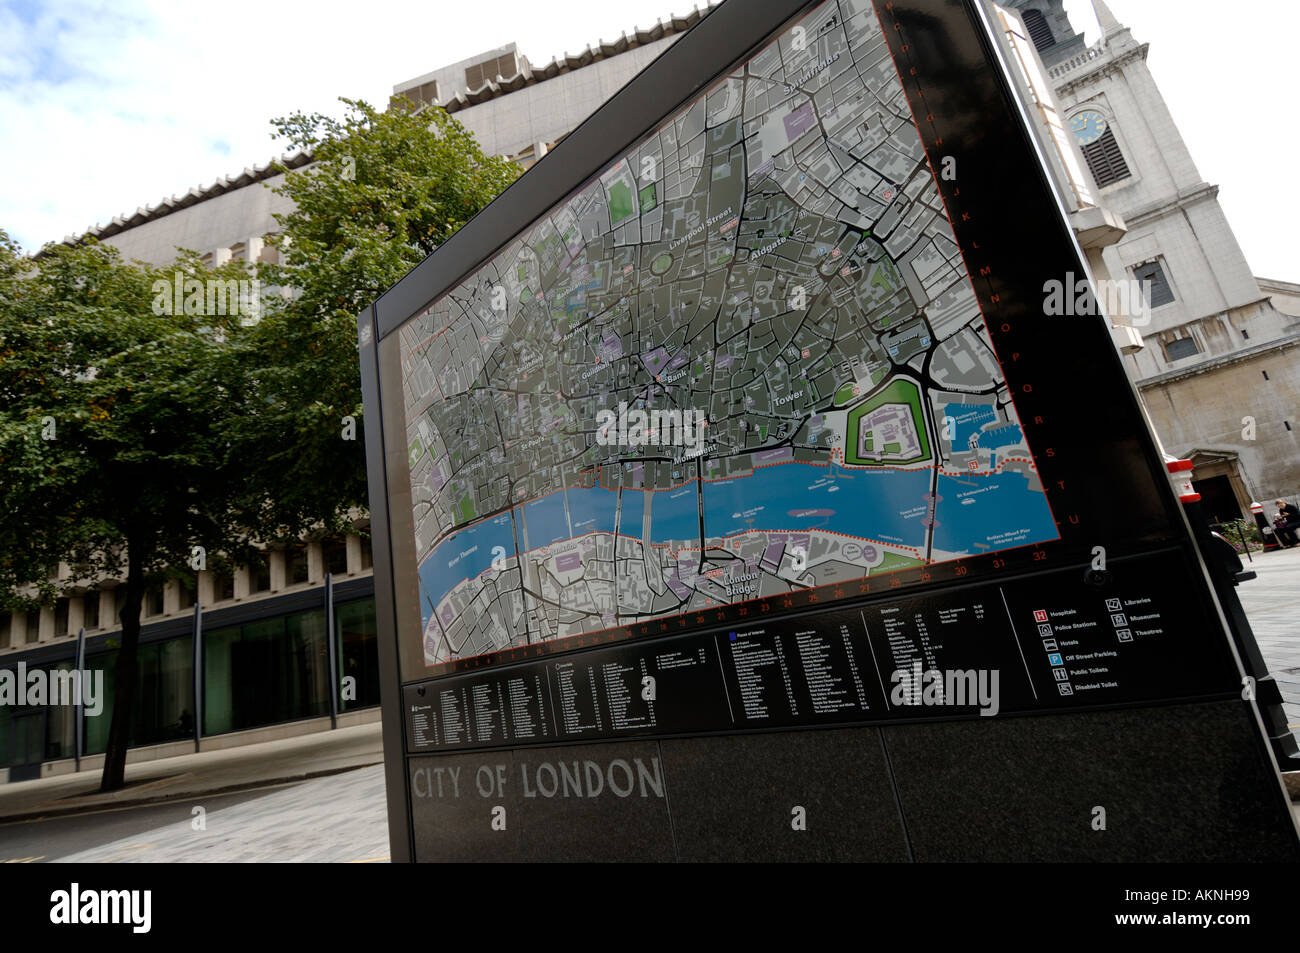 City of London map and sign England UK - Stock Image